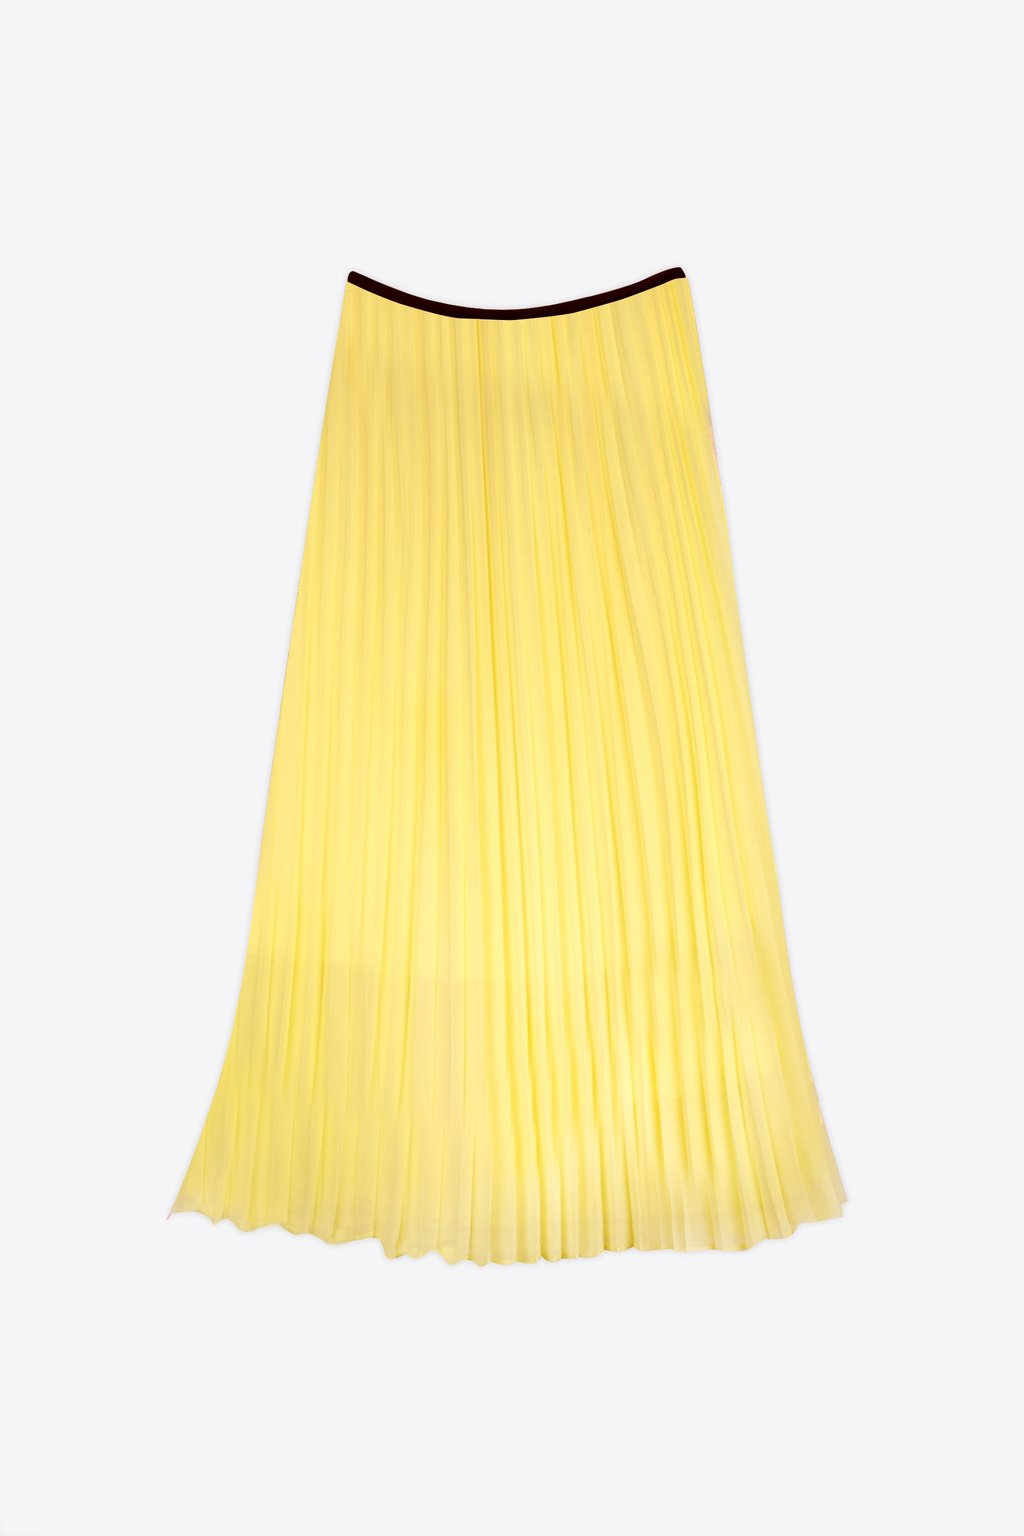 Skirt G007 Yellow 12